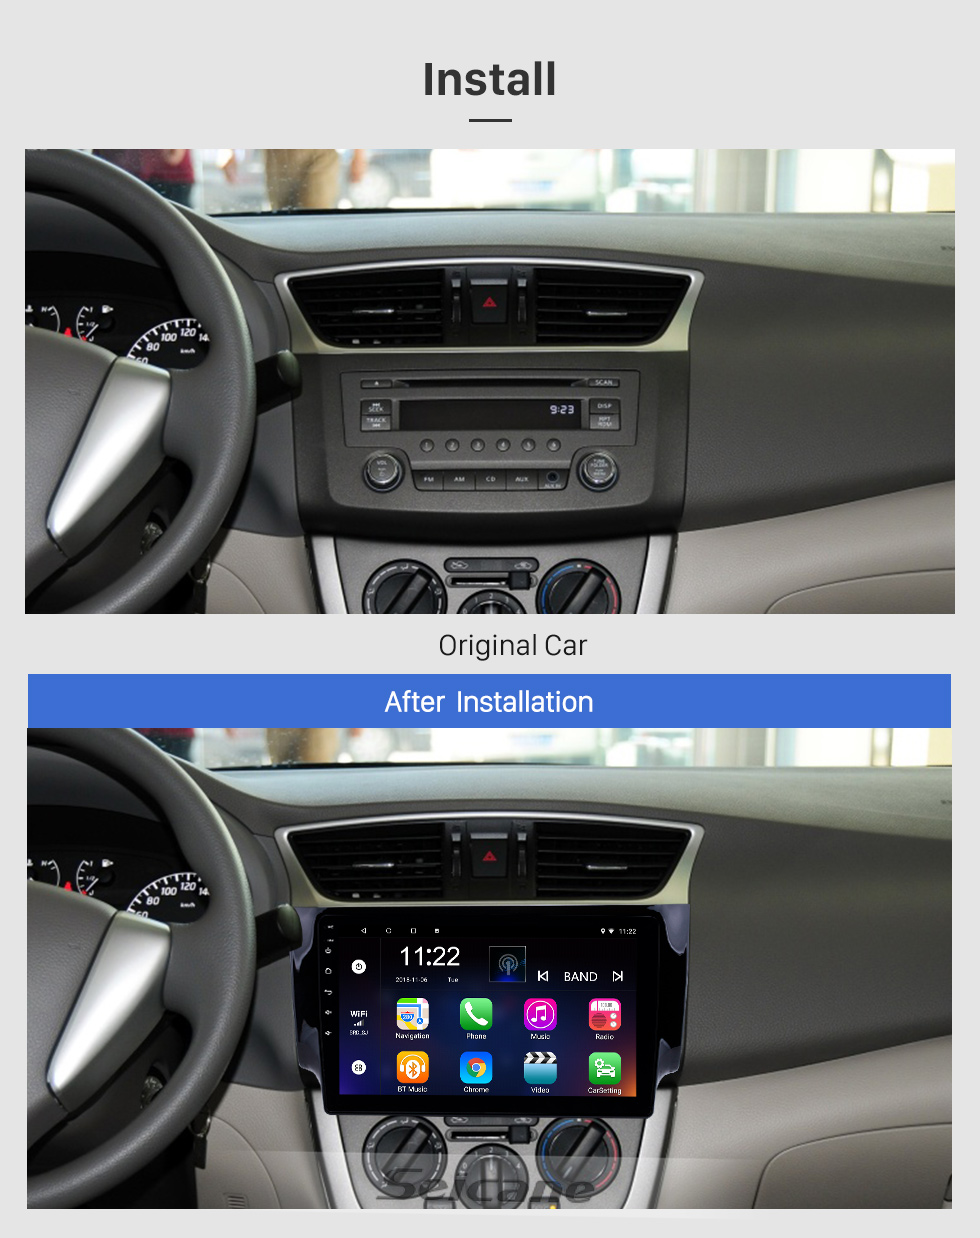 Seicane 10.1 Inch Android 8.1 Touch Screen radio Bluetooth GPS Navigation system For 2012-2016 NISSAN SYLPHY Steering Wheel Control AUX WIFI support TPMS DVR OBD II USB Rear camera